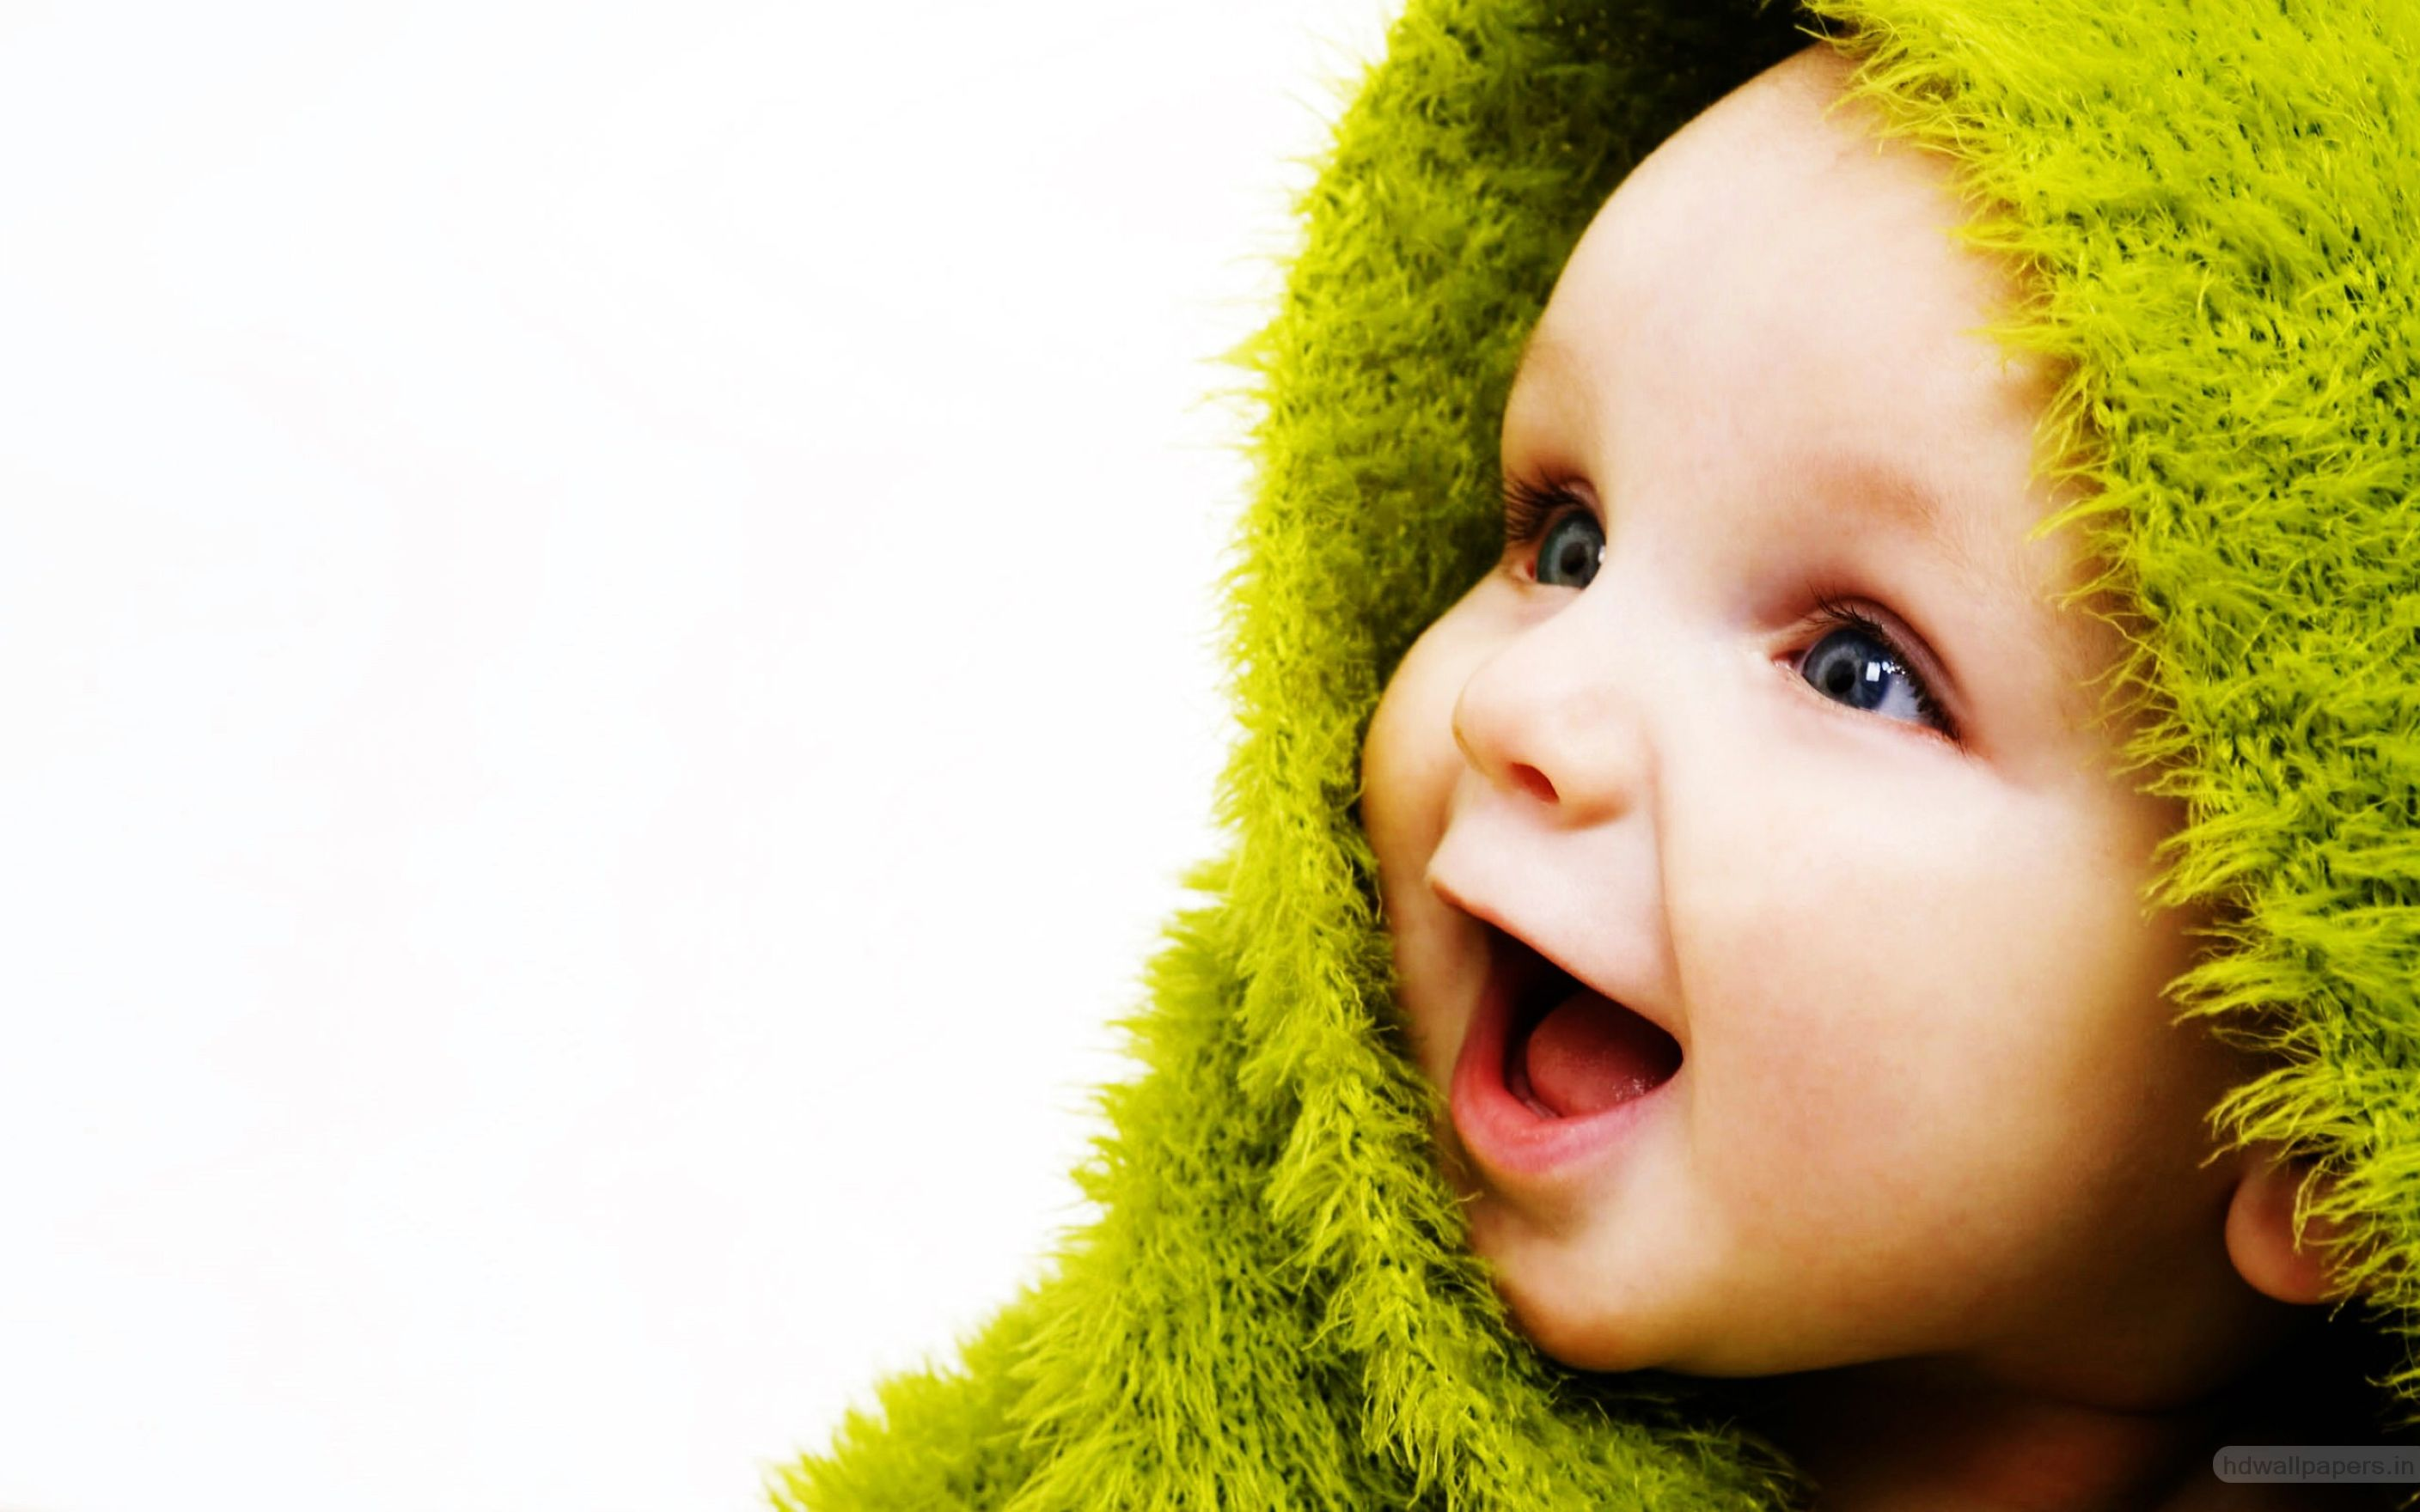 Little Cute Baby Wide Wallpaper Desktop HD Wallpaper Download